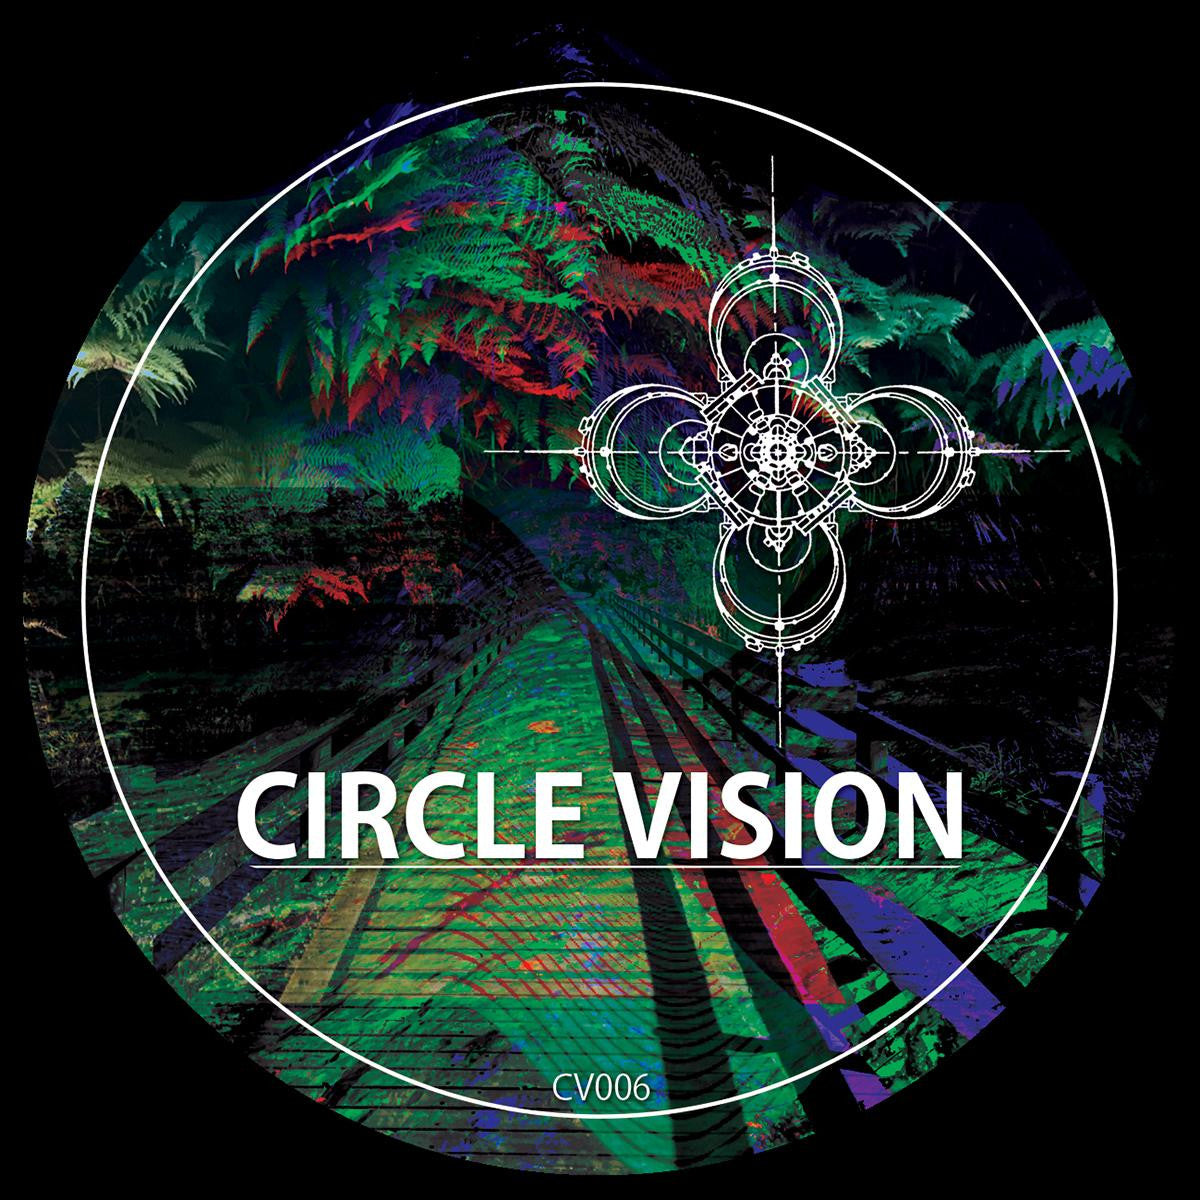 Various Artists - Various Visions 01 , Vinyl - Circle Vision, Unearthed Sounds